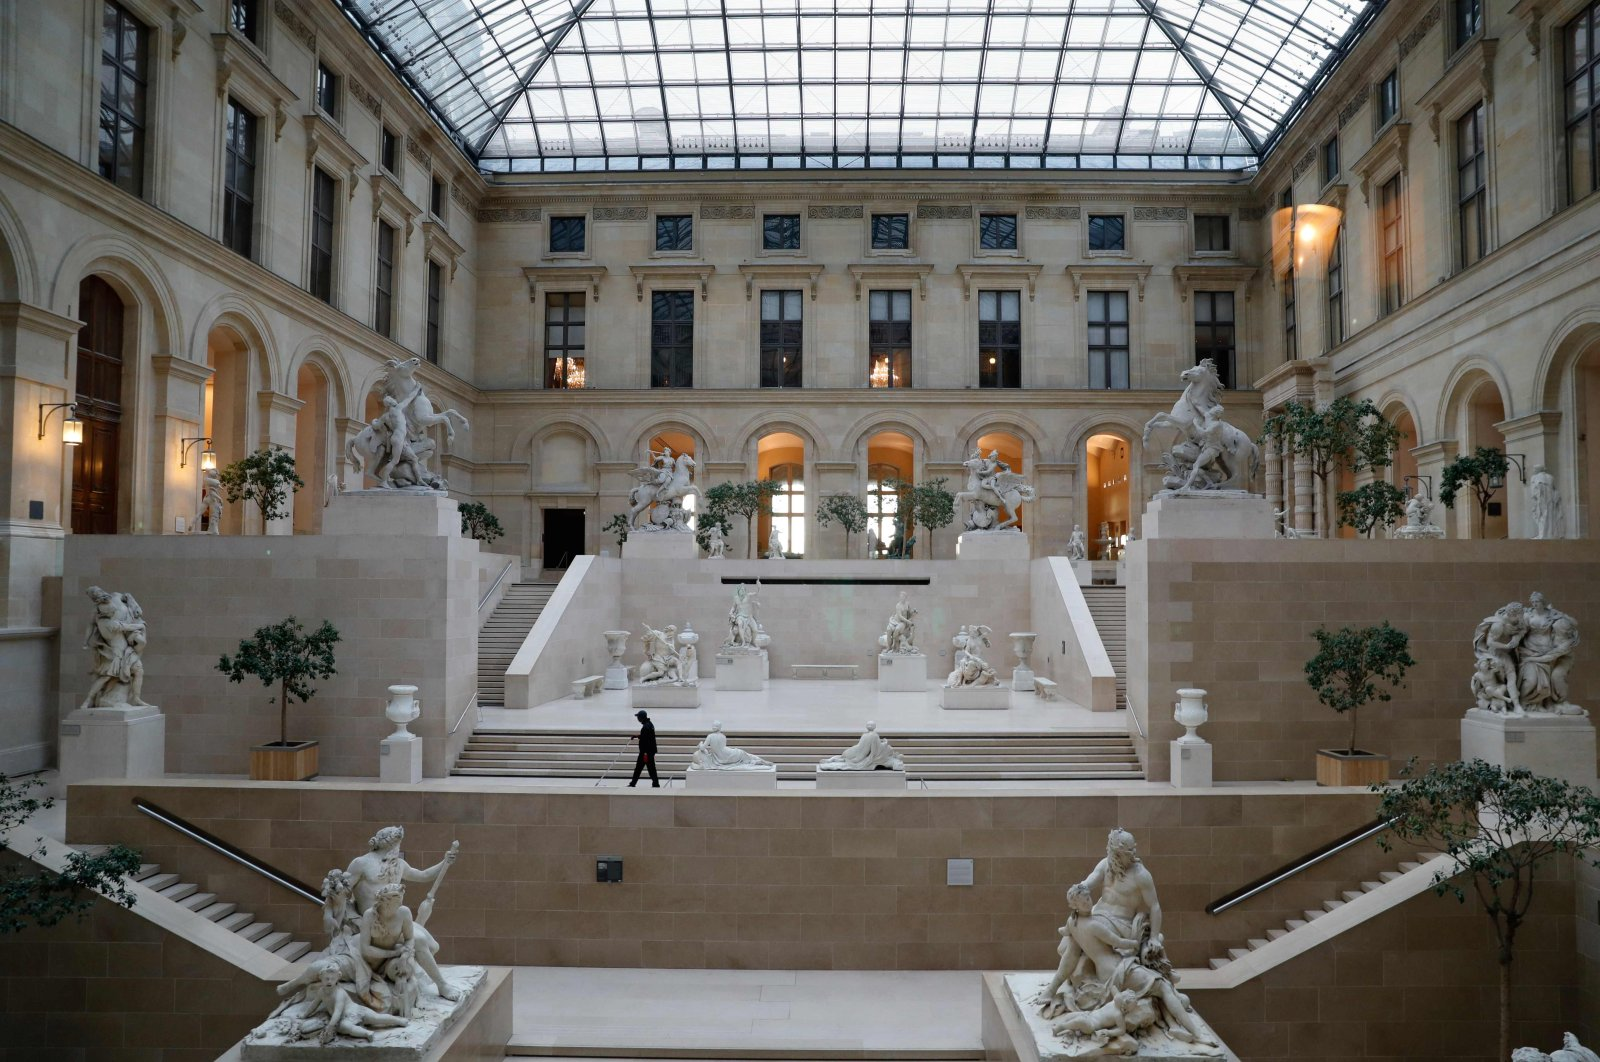 An employee walks in the Cour Marly at the Musee du Louvre in Paris, which was closed to the public since March amid concerns over the COVID-19 outbreak, Paris, France, March 13, 2020. (AFP Photo)